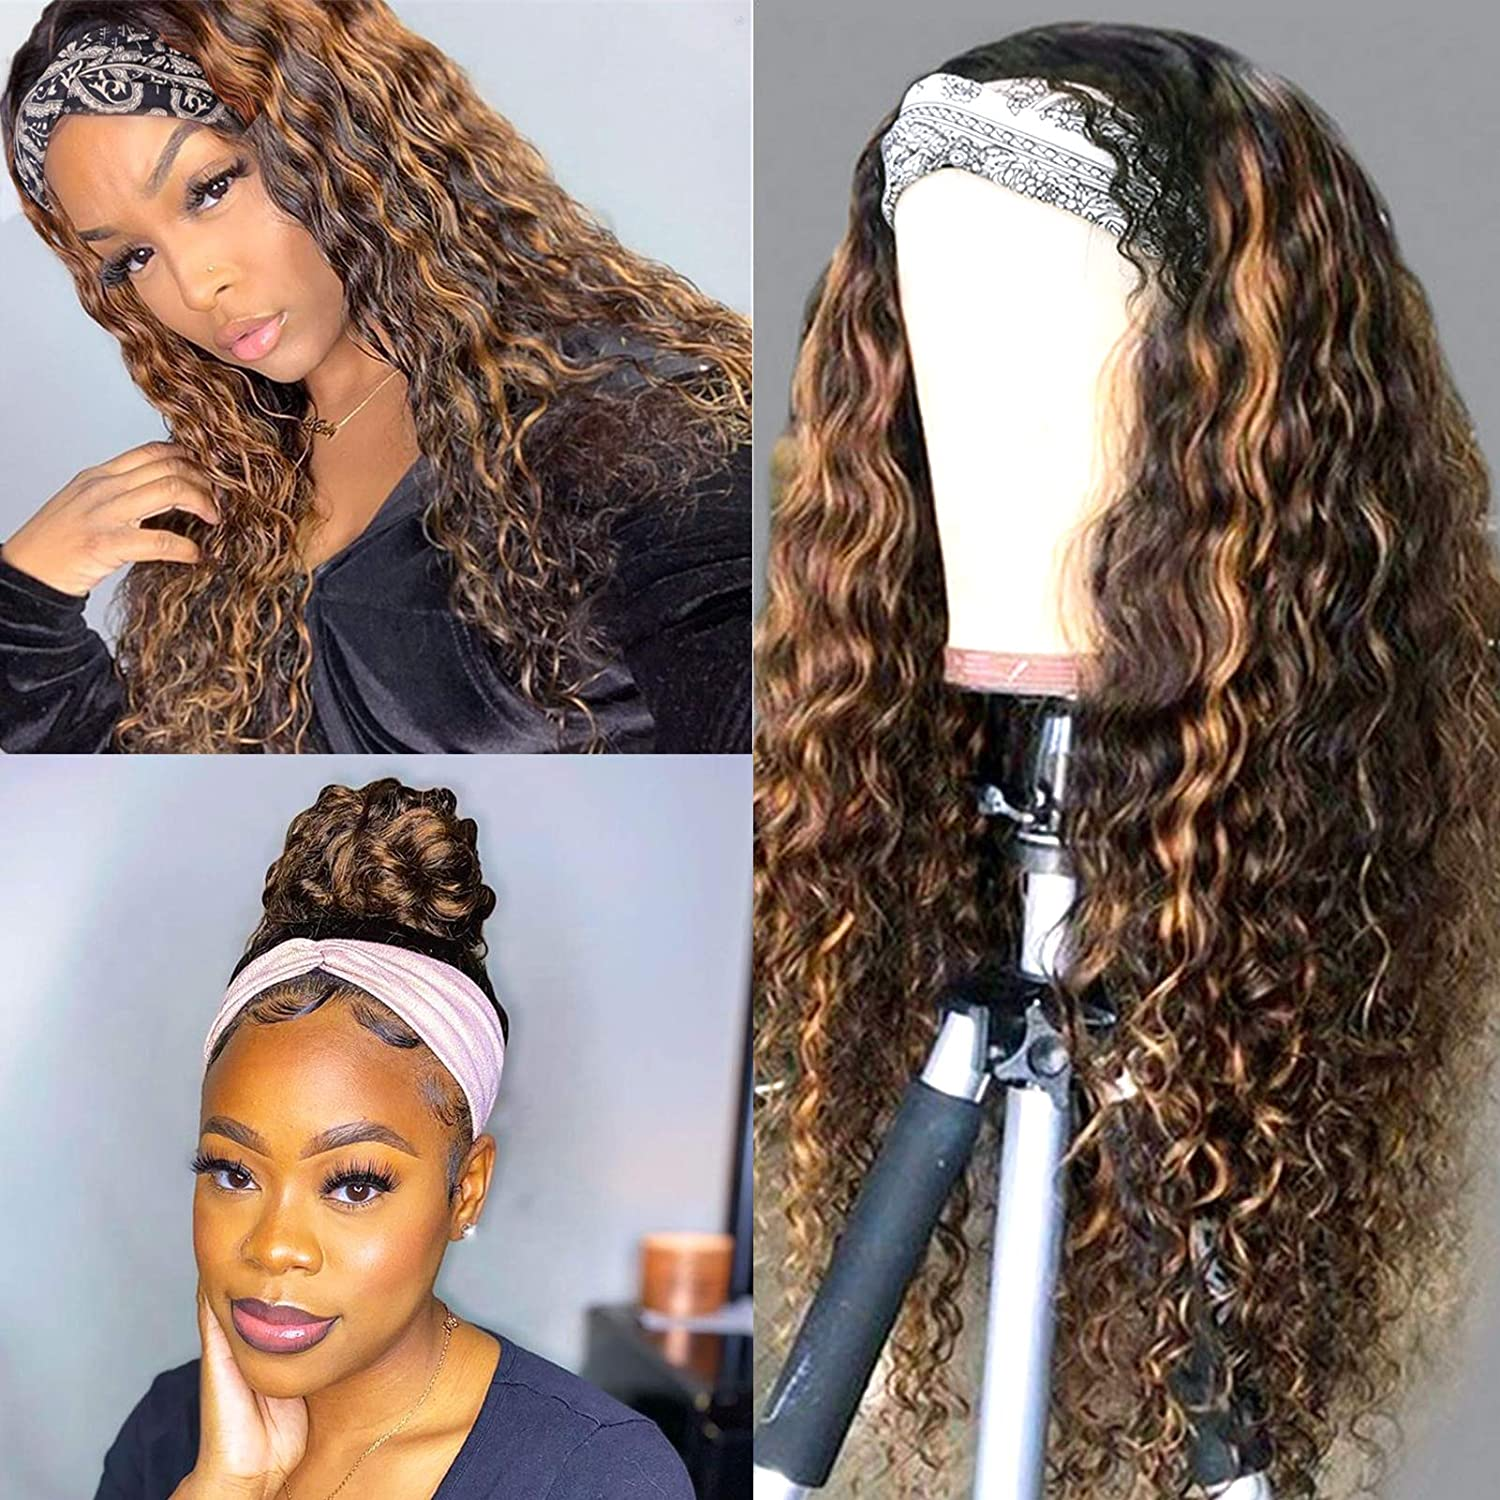 Why buy colored hair headband wigs